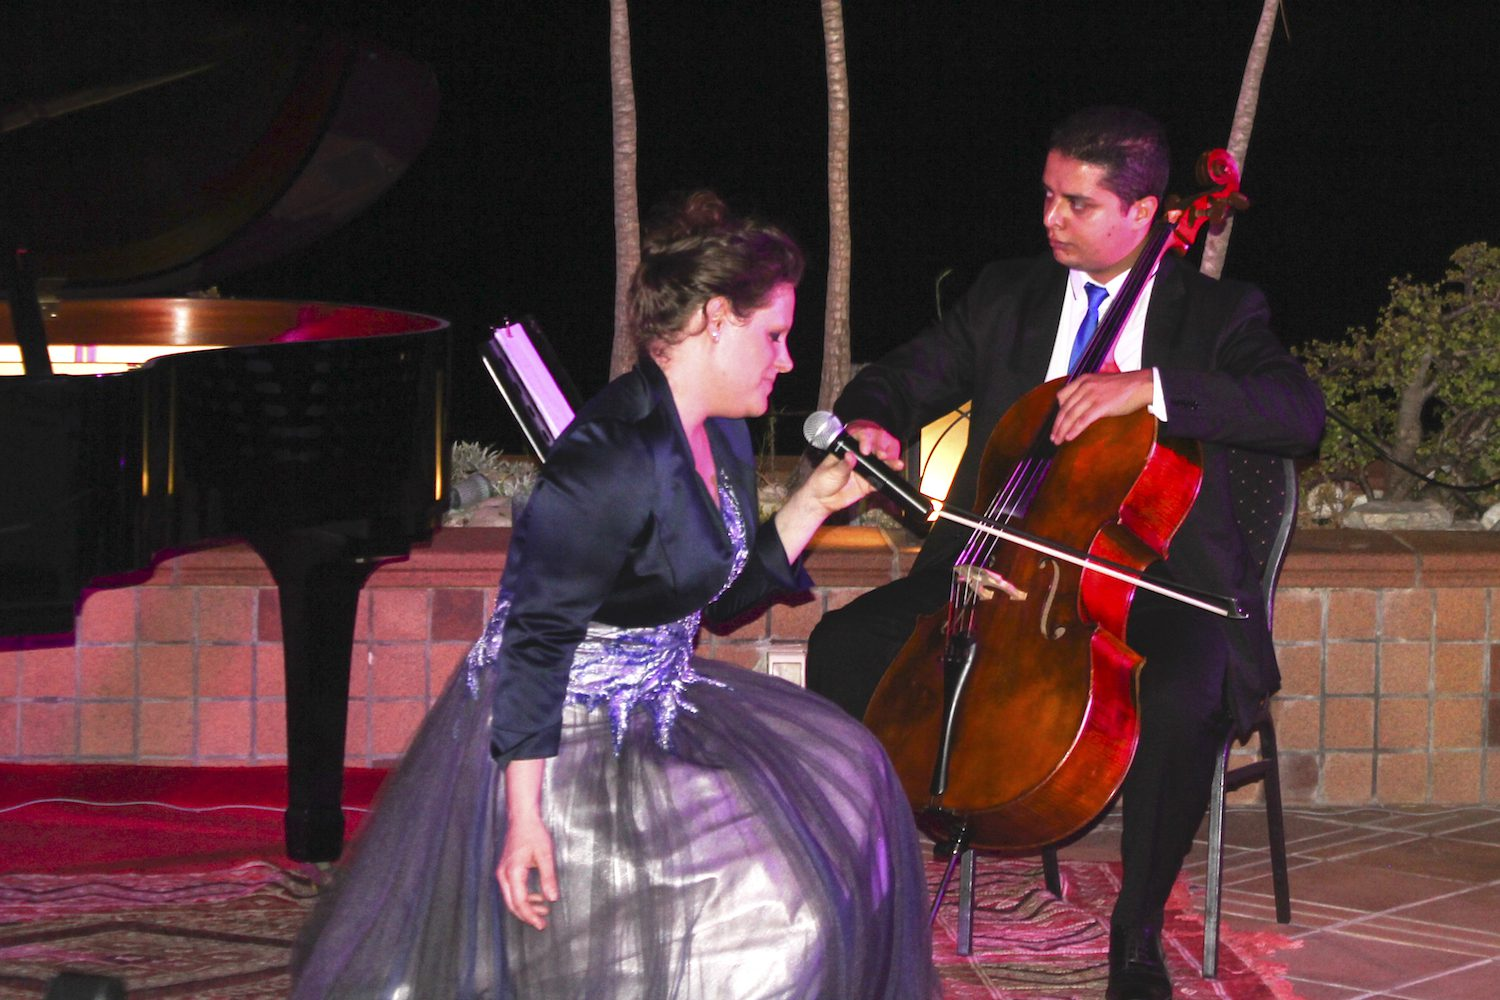 The Tunisian cellist from the Symphony Orchestra Tunis was guest musician at the Peace Concert in Tunis (August 2015)